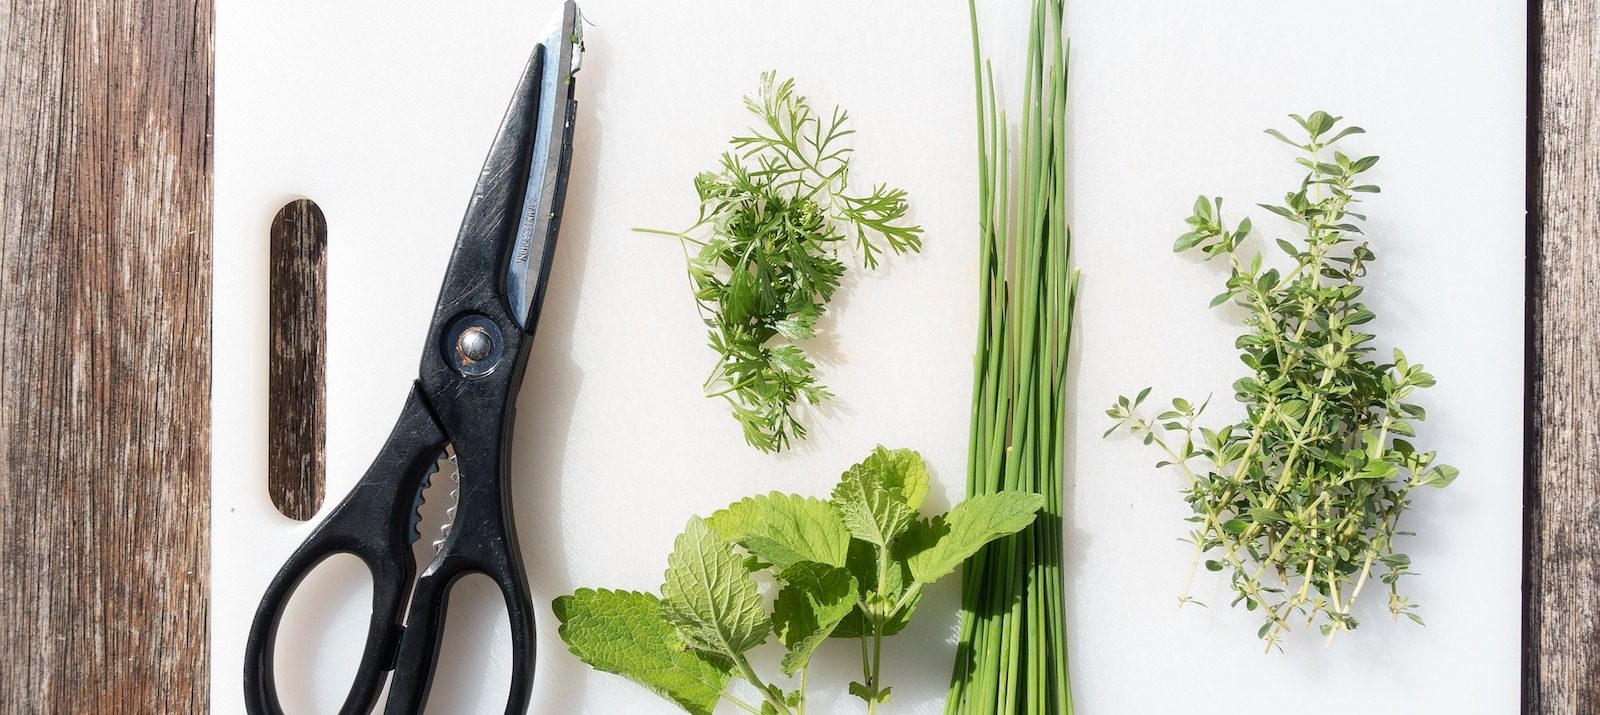 herbs that can be grown at home